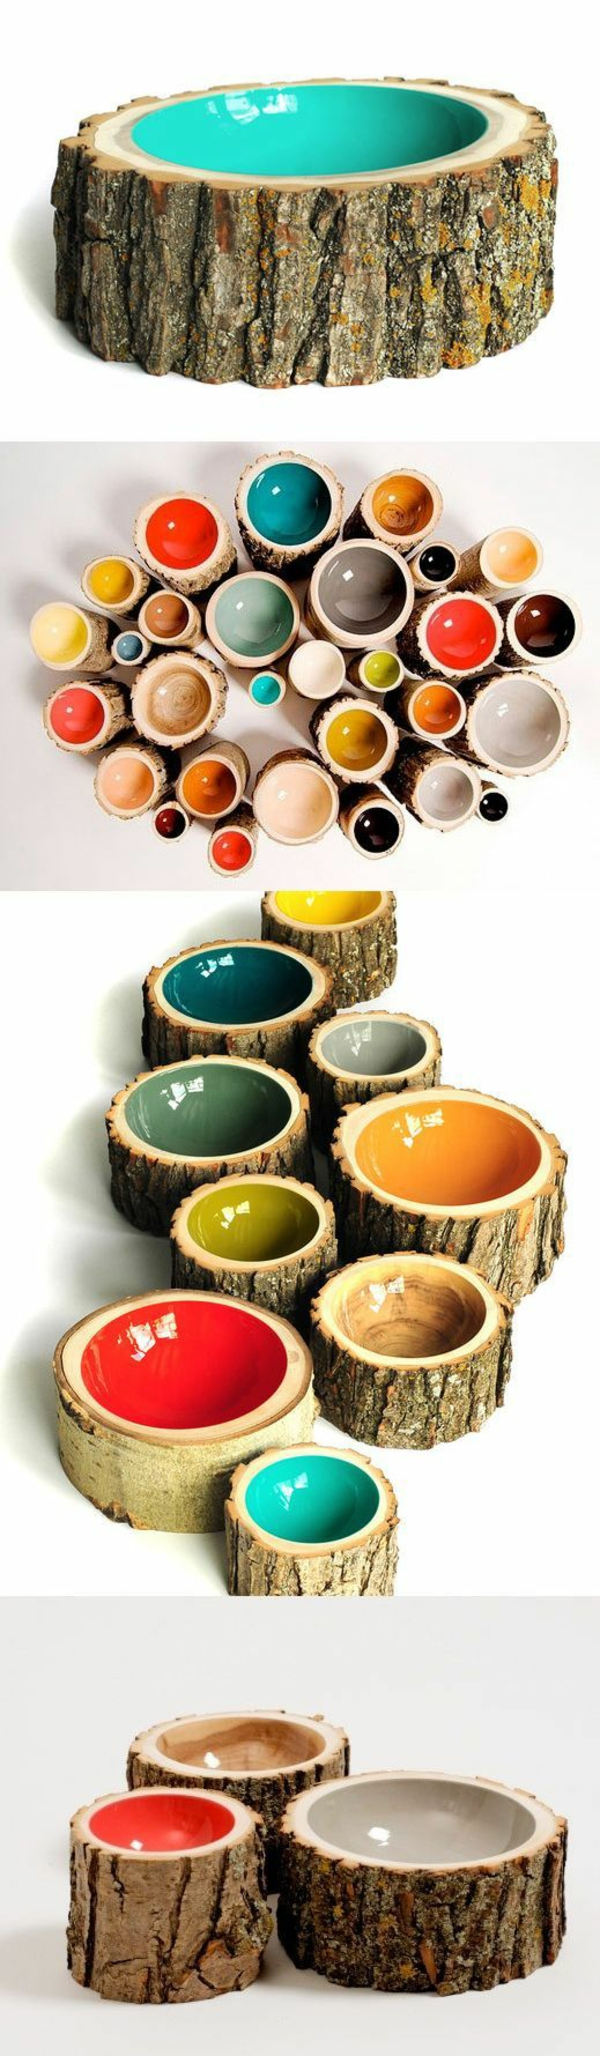 tree trunk decoration diy projects painted